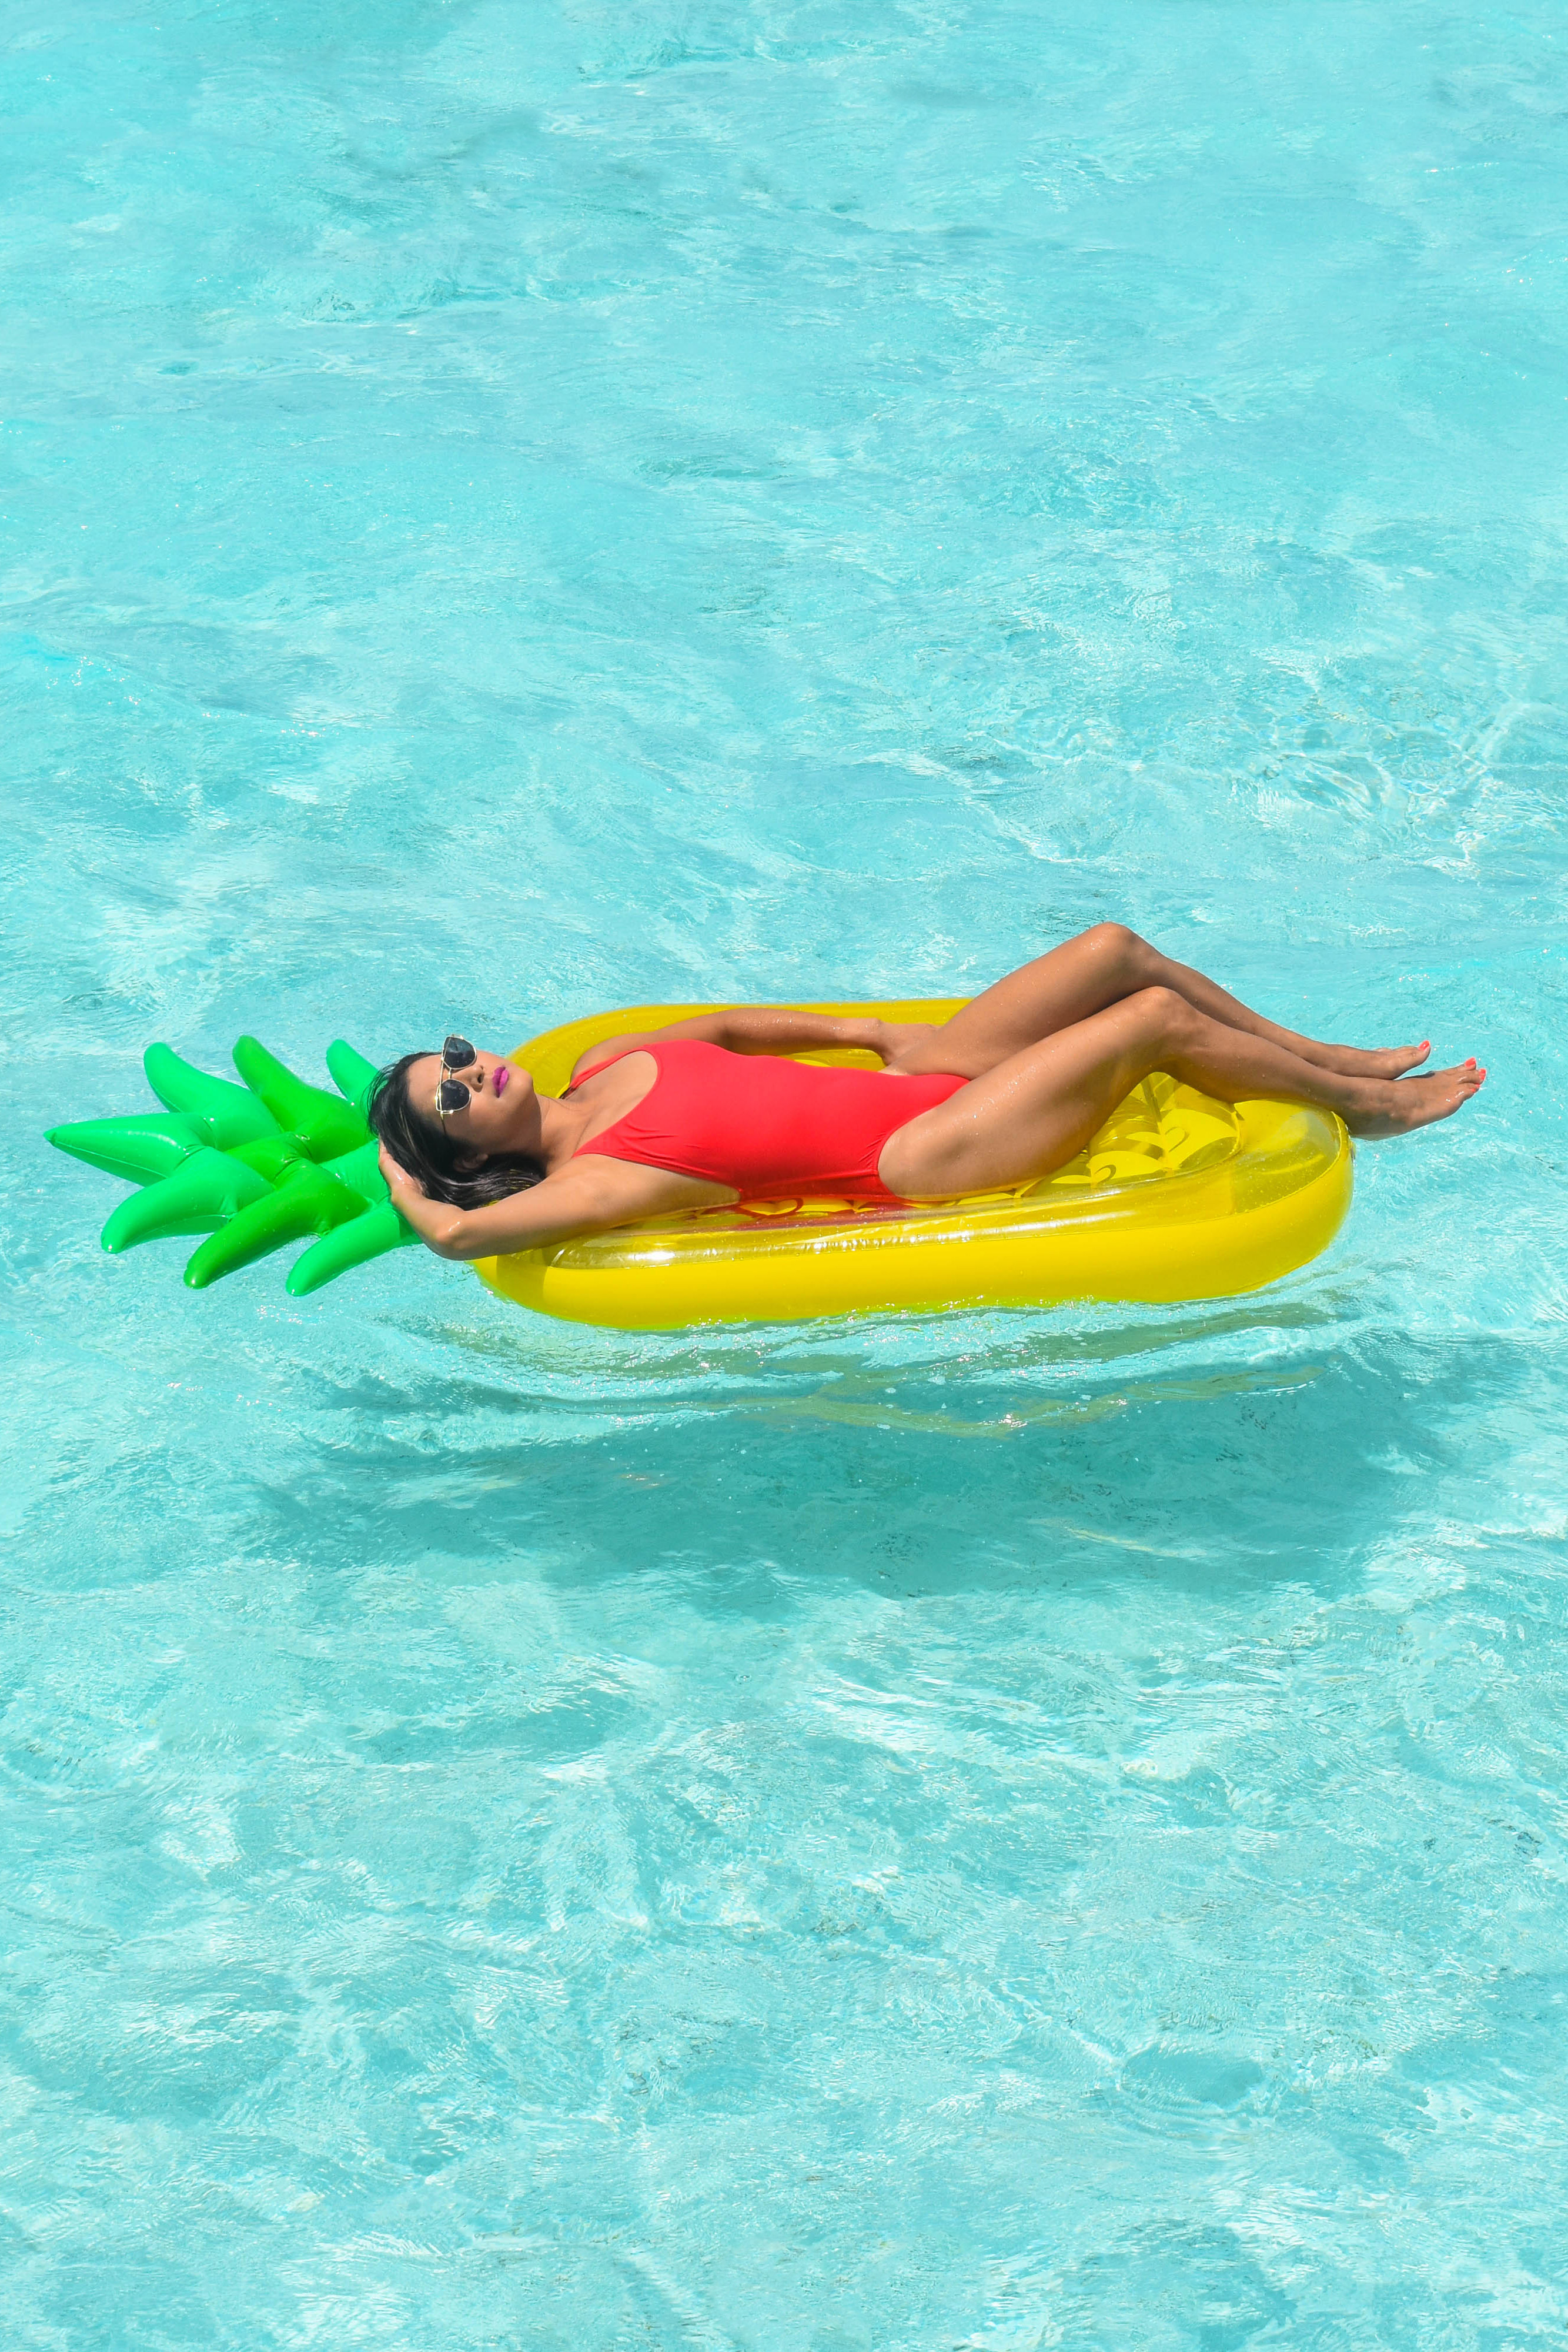 J Crew One Piece Swimsuit and Pineapple Float